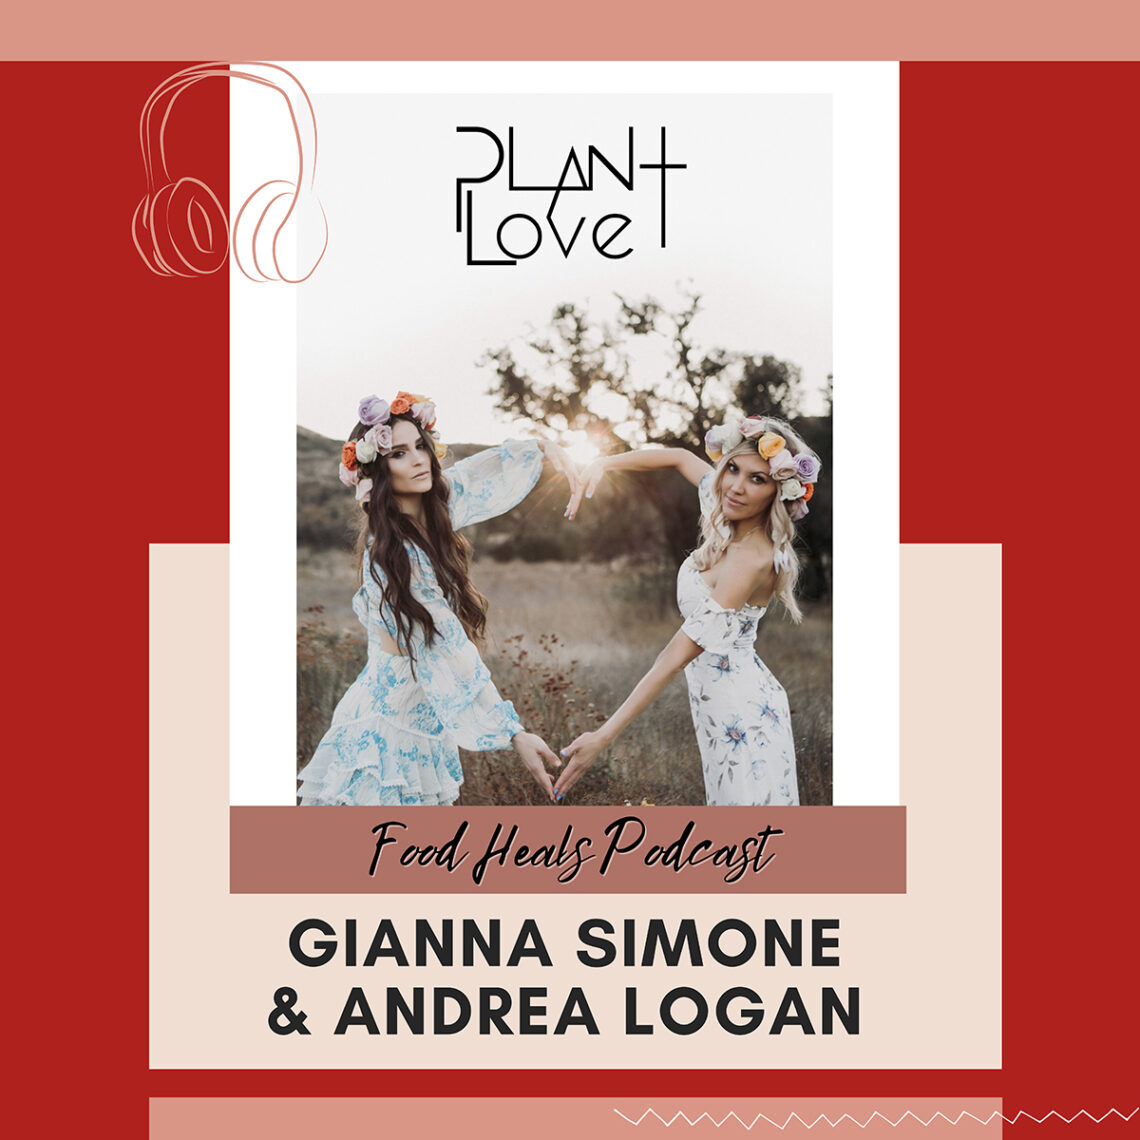 Plant Love: The Story of Two Hollywood Starlets who Found God, Spirituality, and Veganism